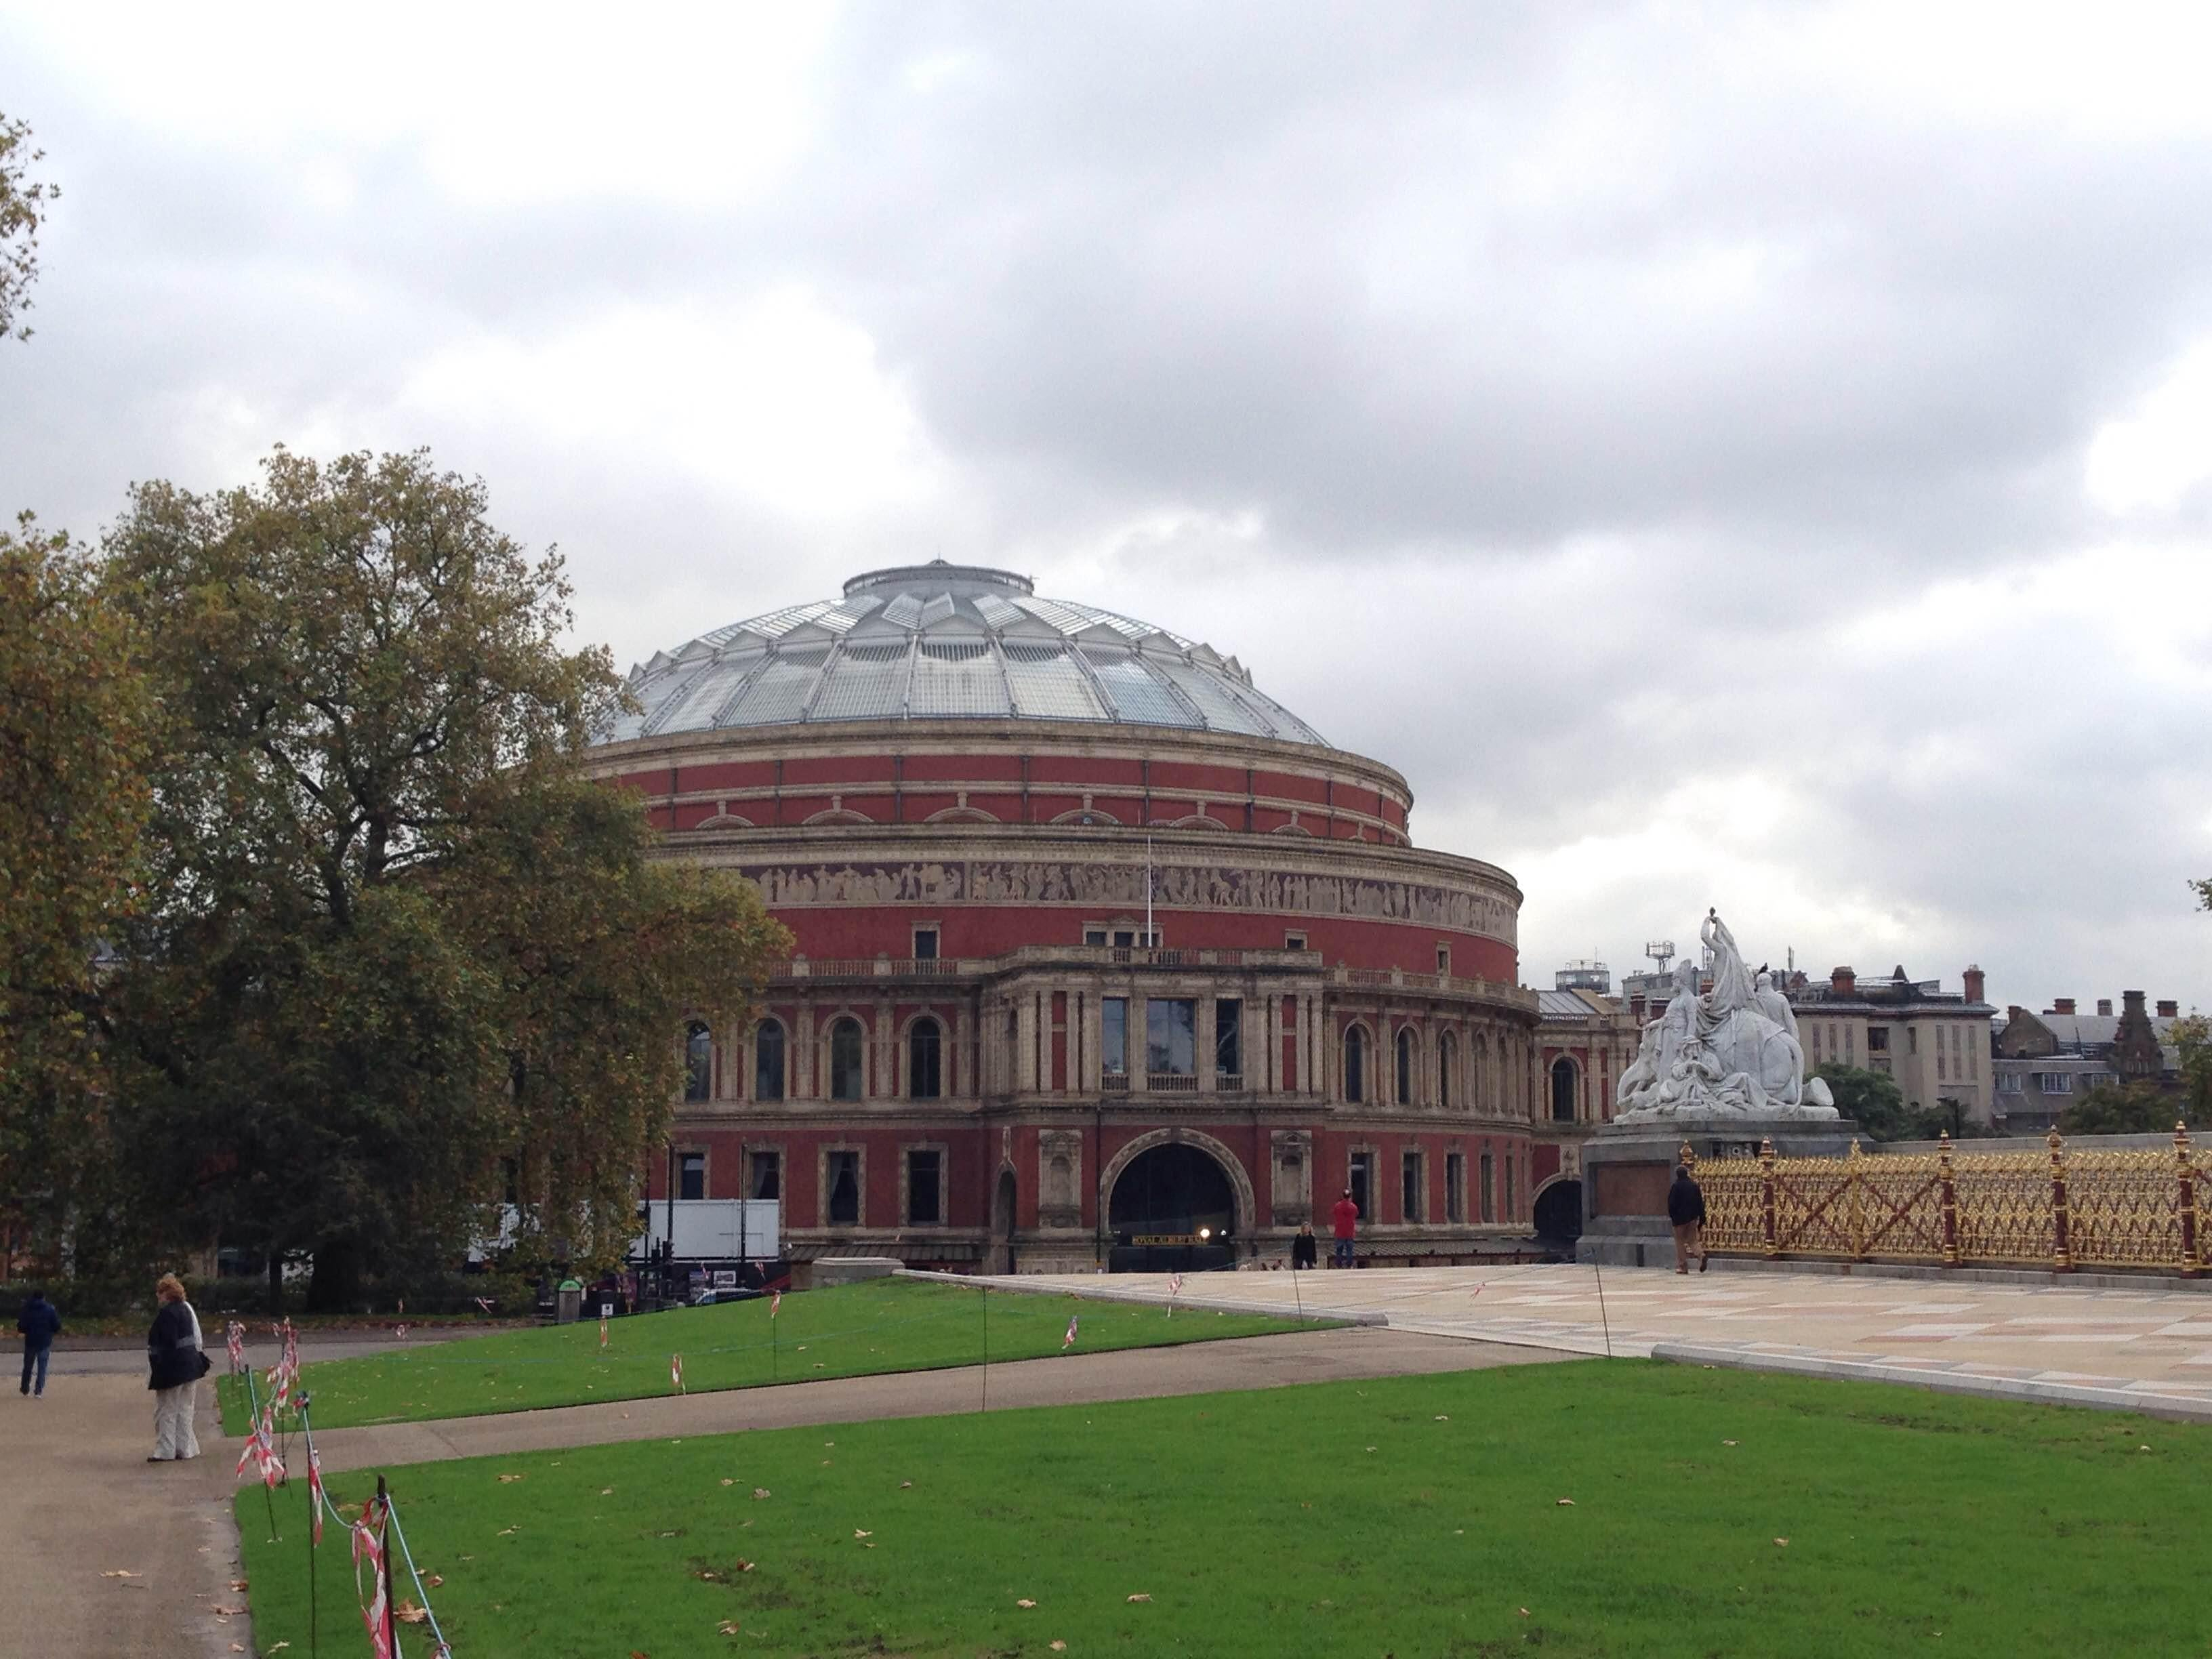 Parque en Royal Albert Hall